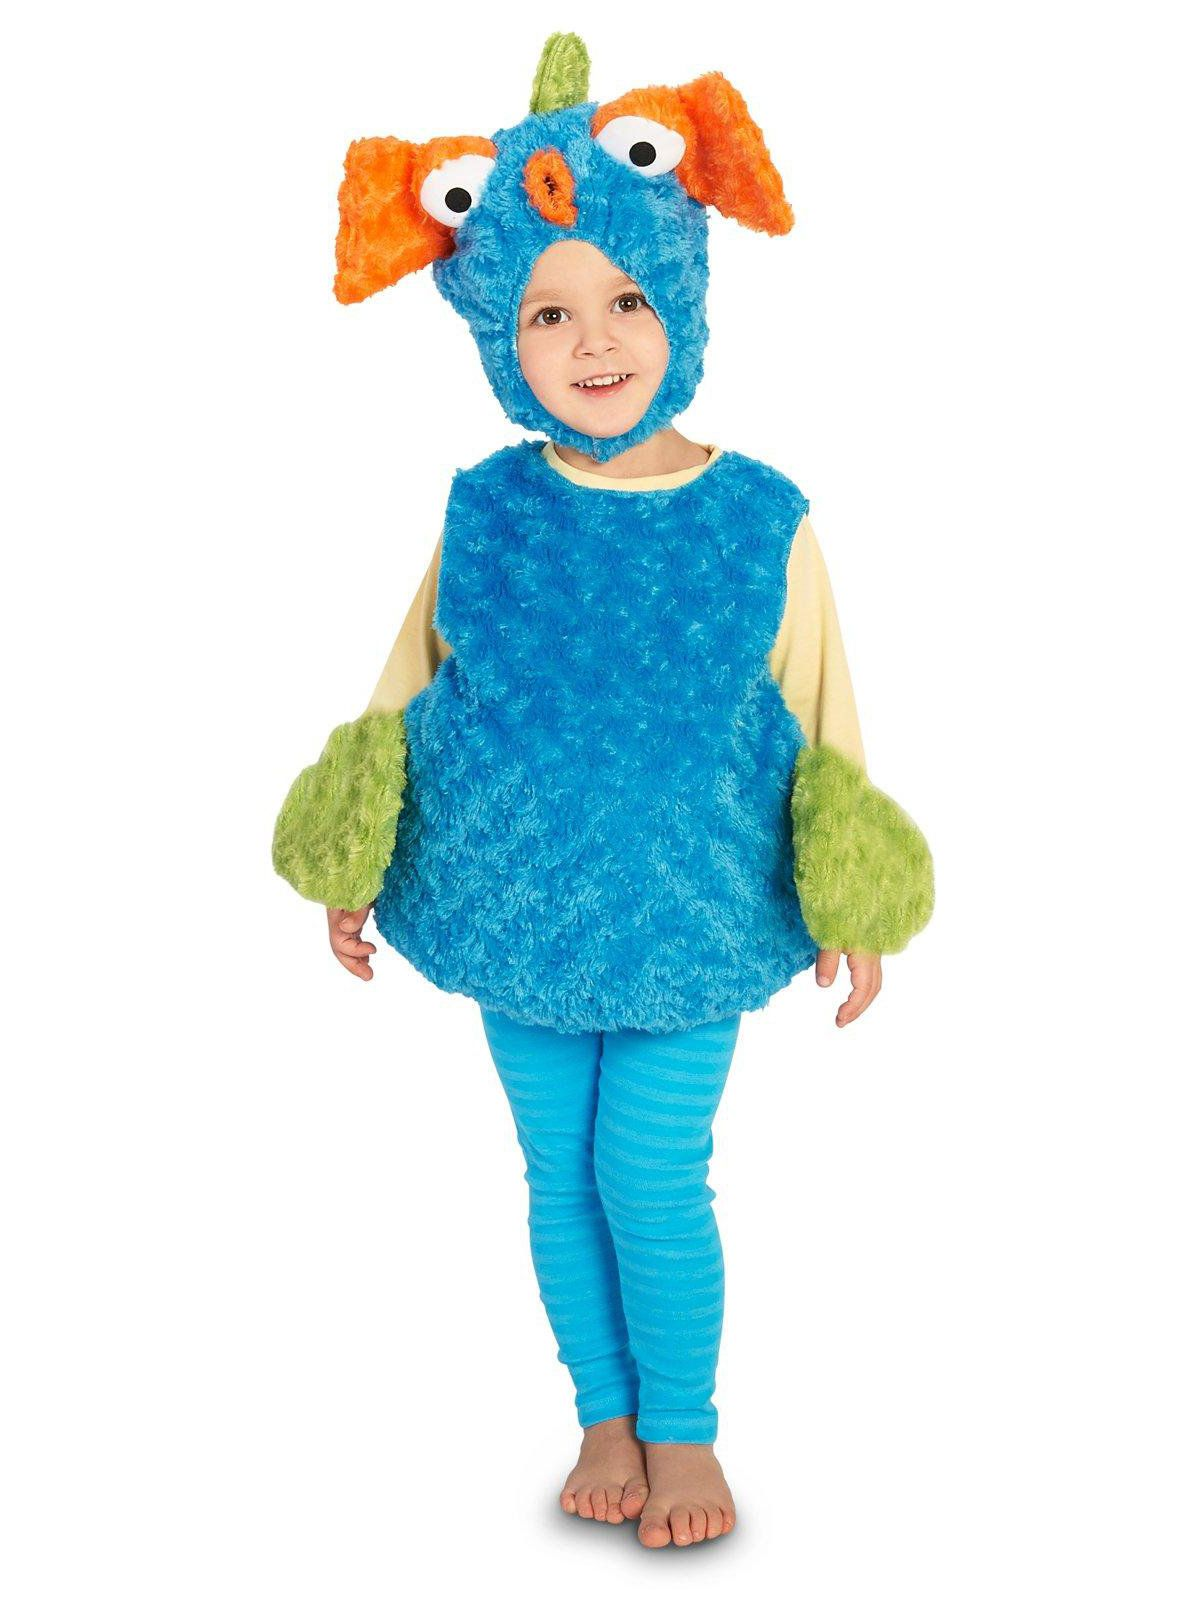 Rainbow Fish Costume For Toddlers  sc 1 st  Wholesale Halloween Costumes & Rainbow Fish Costume For Toddlers | Wholesale Halloween Costumes